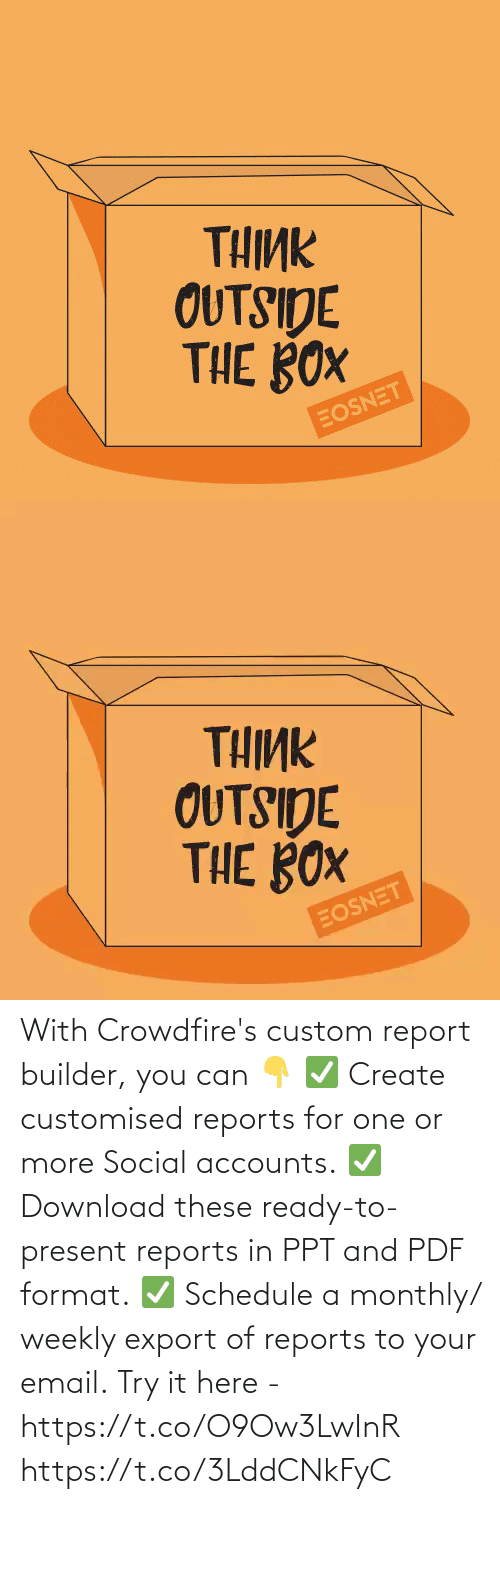 Email: With Crowdfire's custom report builder, you can 👇 ✅ Create customised reports for one or more Social accounts. ✅ Download these ready-to-present reports in PPT and PDF format. ✅ Schedule a monthly/ weekly export of reports to your email.  Try it here - https://t.co/O9Ow3LwInR https://t.co/3LddCNkFyC